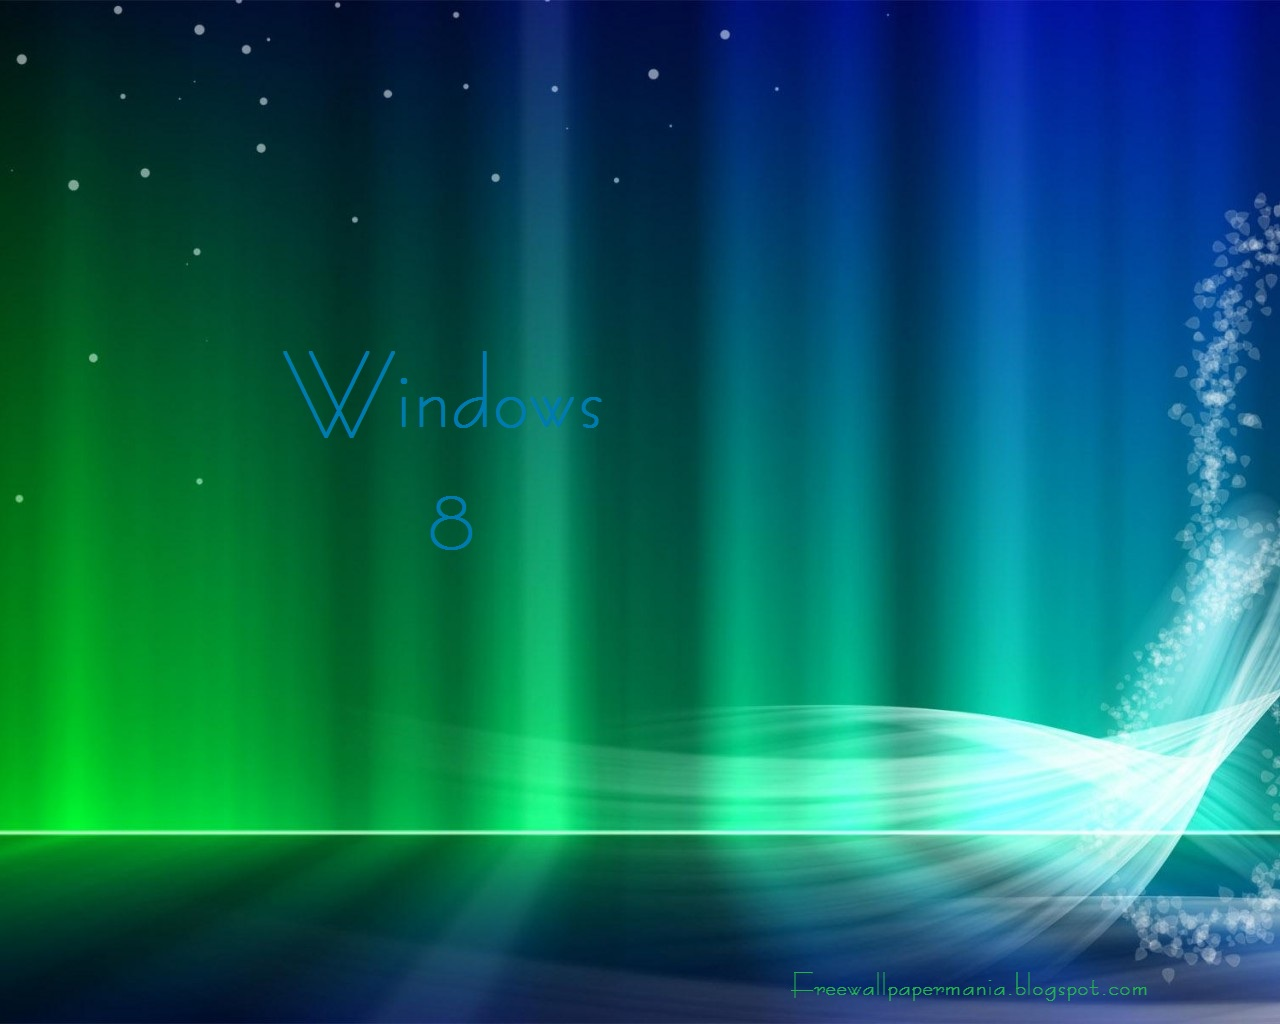 http://2.bp.blogspot.com/-OVr4vmcOLQU/TpRvlEQfiYI/AAAAAAAAC0s/R9ggjLq25h0/s1600/windows%2B8%2Bwallpapers-windows%2B8-3d%2Babstract-art-beautiful-red-colorfull-white-black-free-download-eye-drops-2011-2012-2013-2014-2015%2B%2525283%252529.jpg